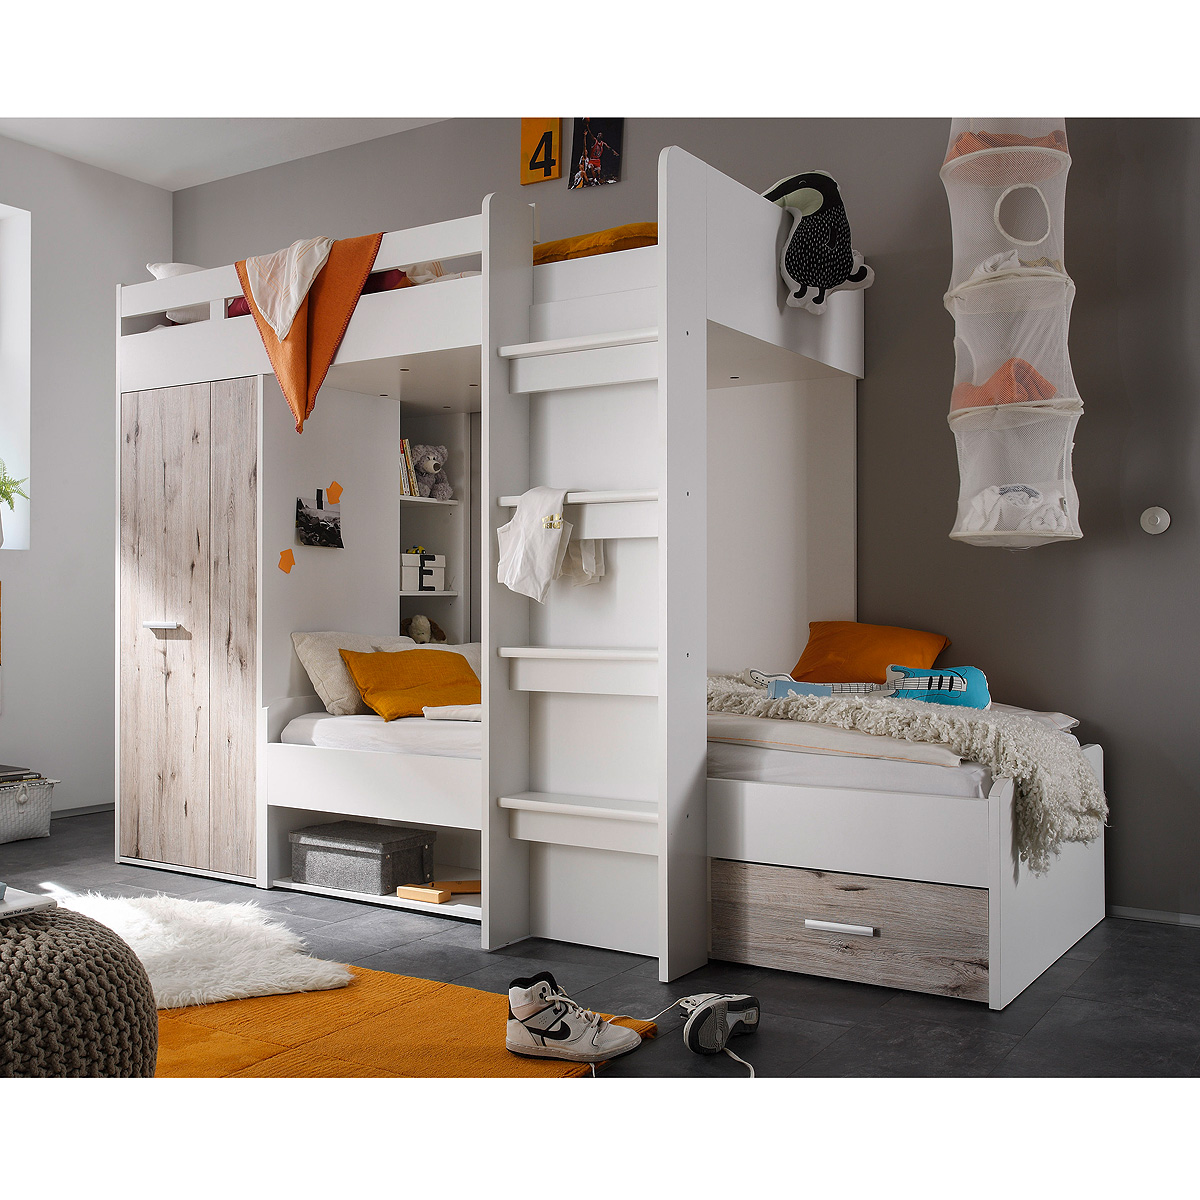 hochbett maxi kinderbett etagenbett kinderzimmerbett bett. Black Bedroom Furniture Sets. Home Design Ideas